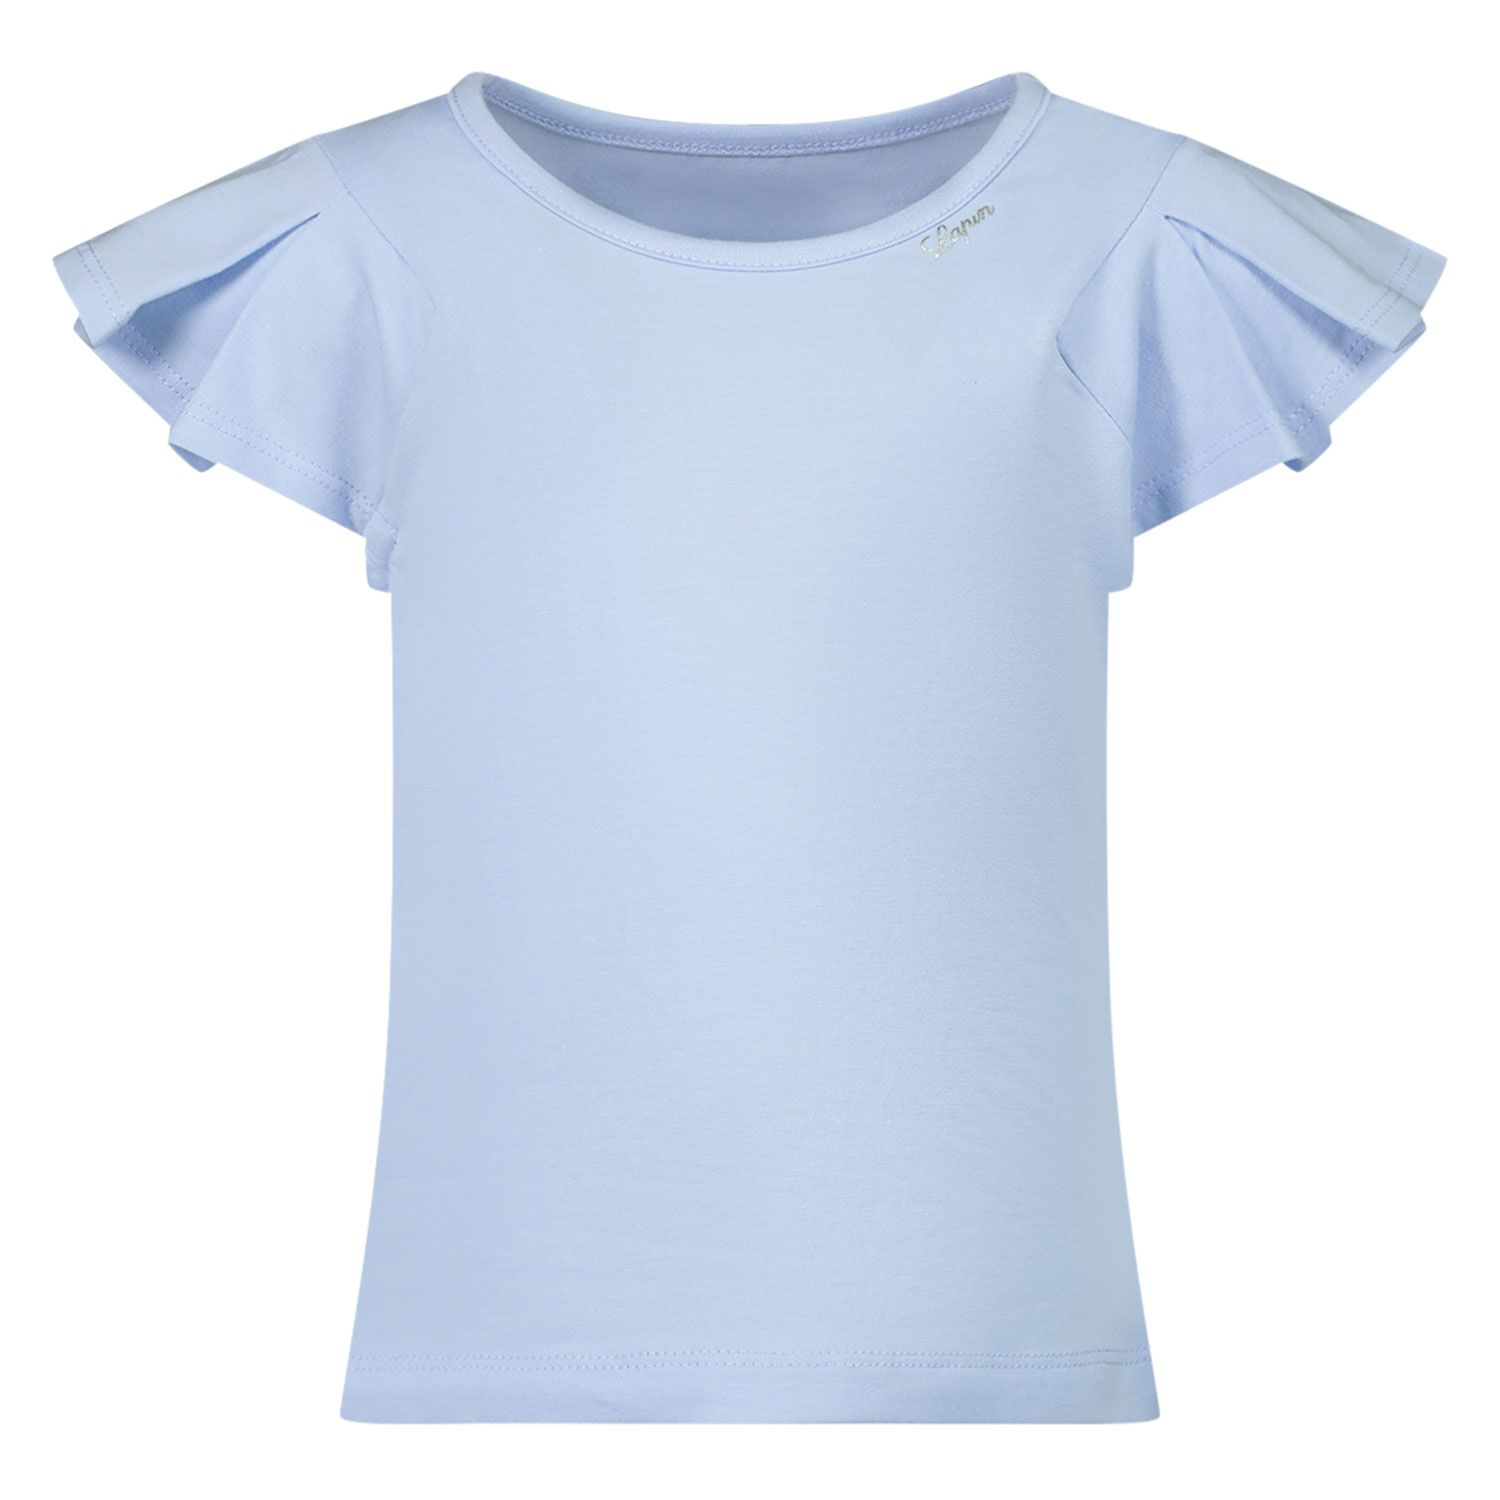 Picture of Lapin 211E2323 baby shirt light blue